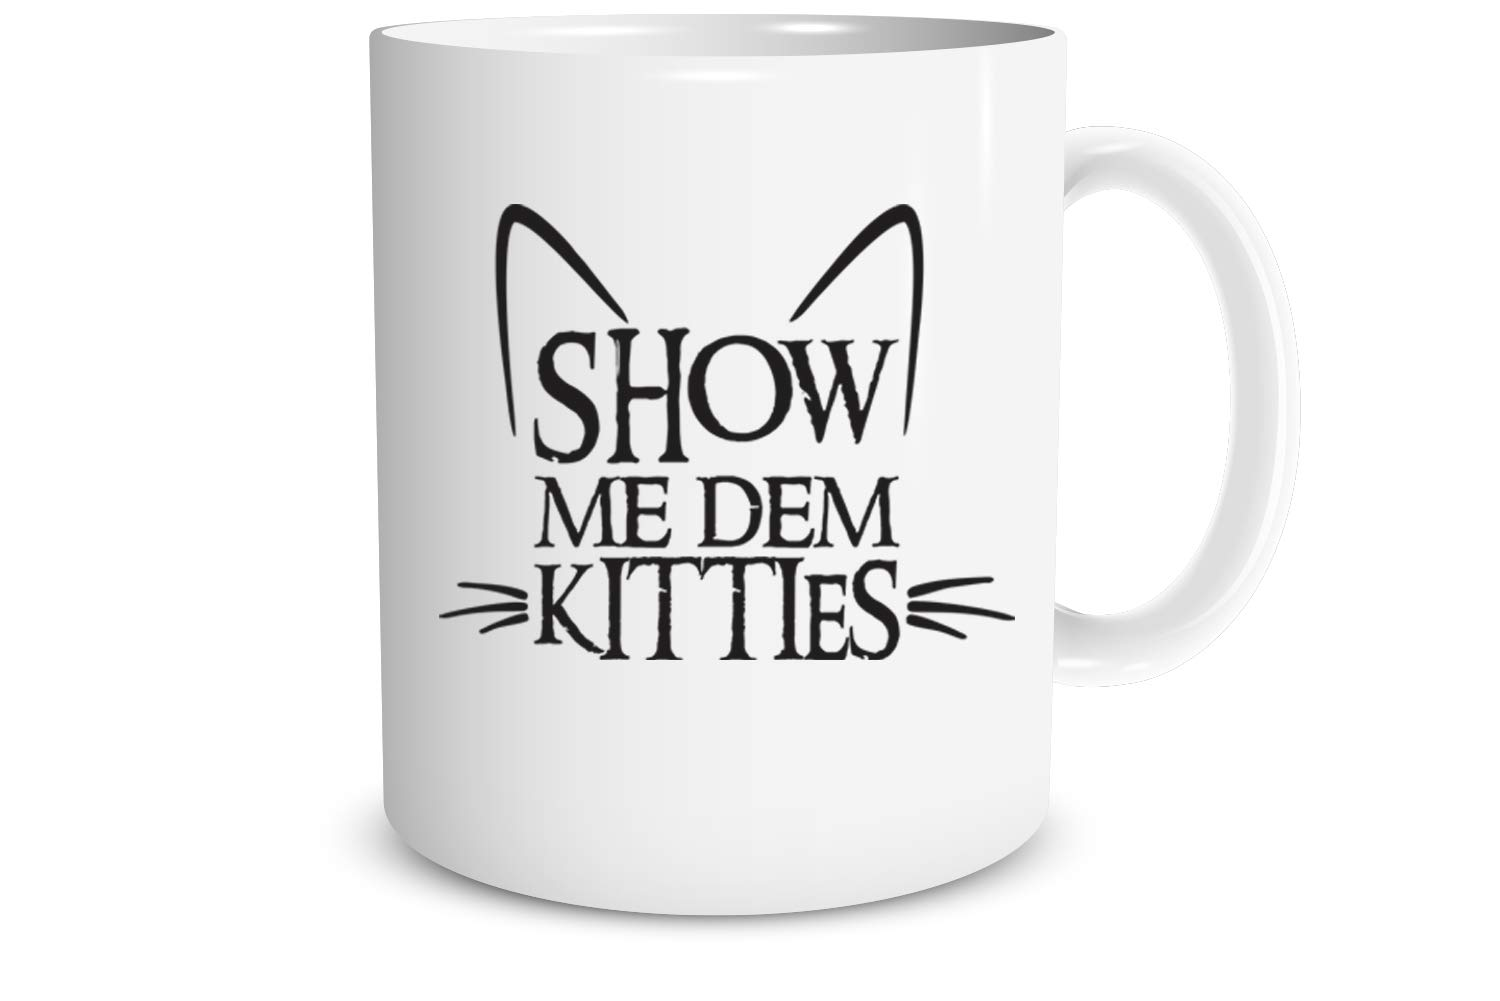 Show Me Dem Kitties 11oz Funny Coffee Mug, Cute Coffee Mugs For Women And Men, Cool Funny Cat Accessories Gifts For Crazy Cat Lovers